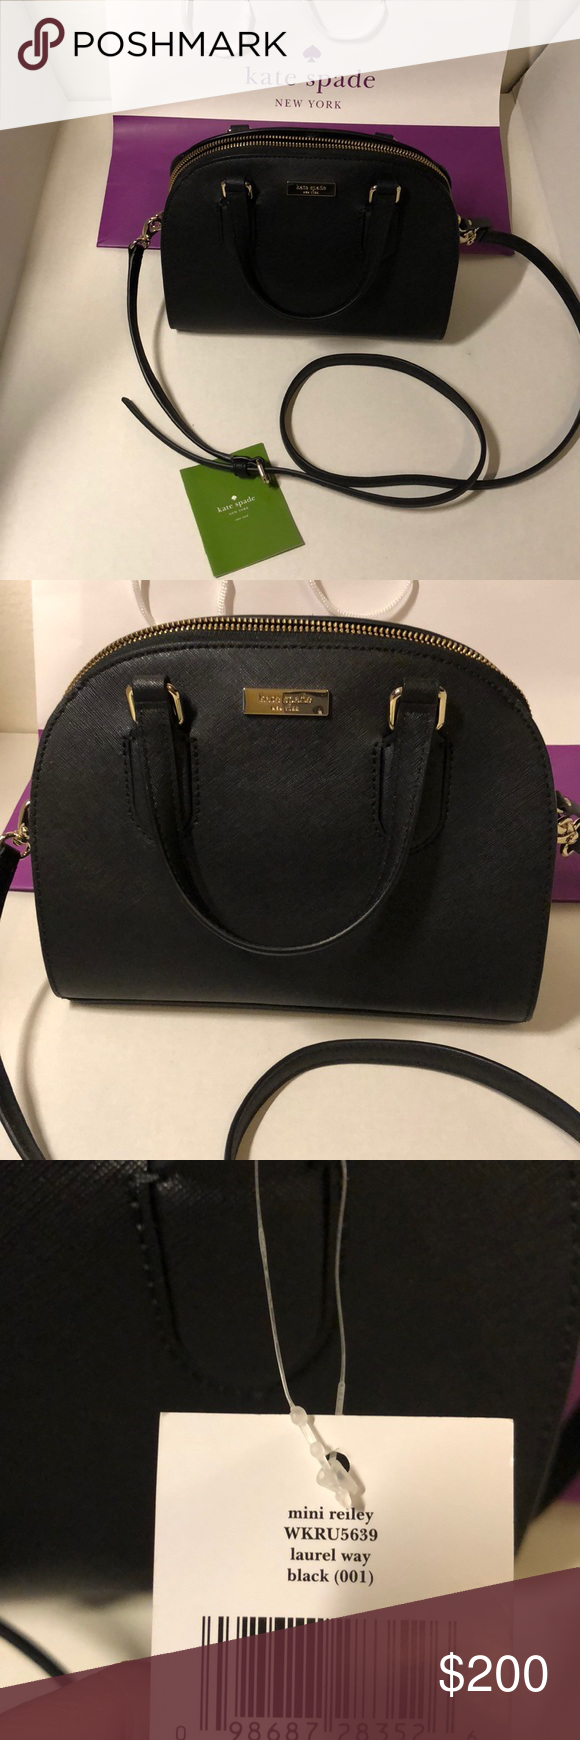 "a3f0b3fe3 New Kate spade mini Riley black satchel crossbody NWT. Authentic. Size:  9.5"" x 7.5"". Firm with price. No flaws. Has a back pocket, detachable and  adjustable ..."